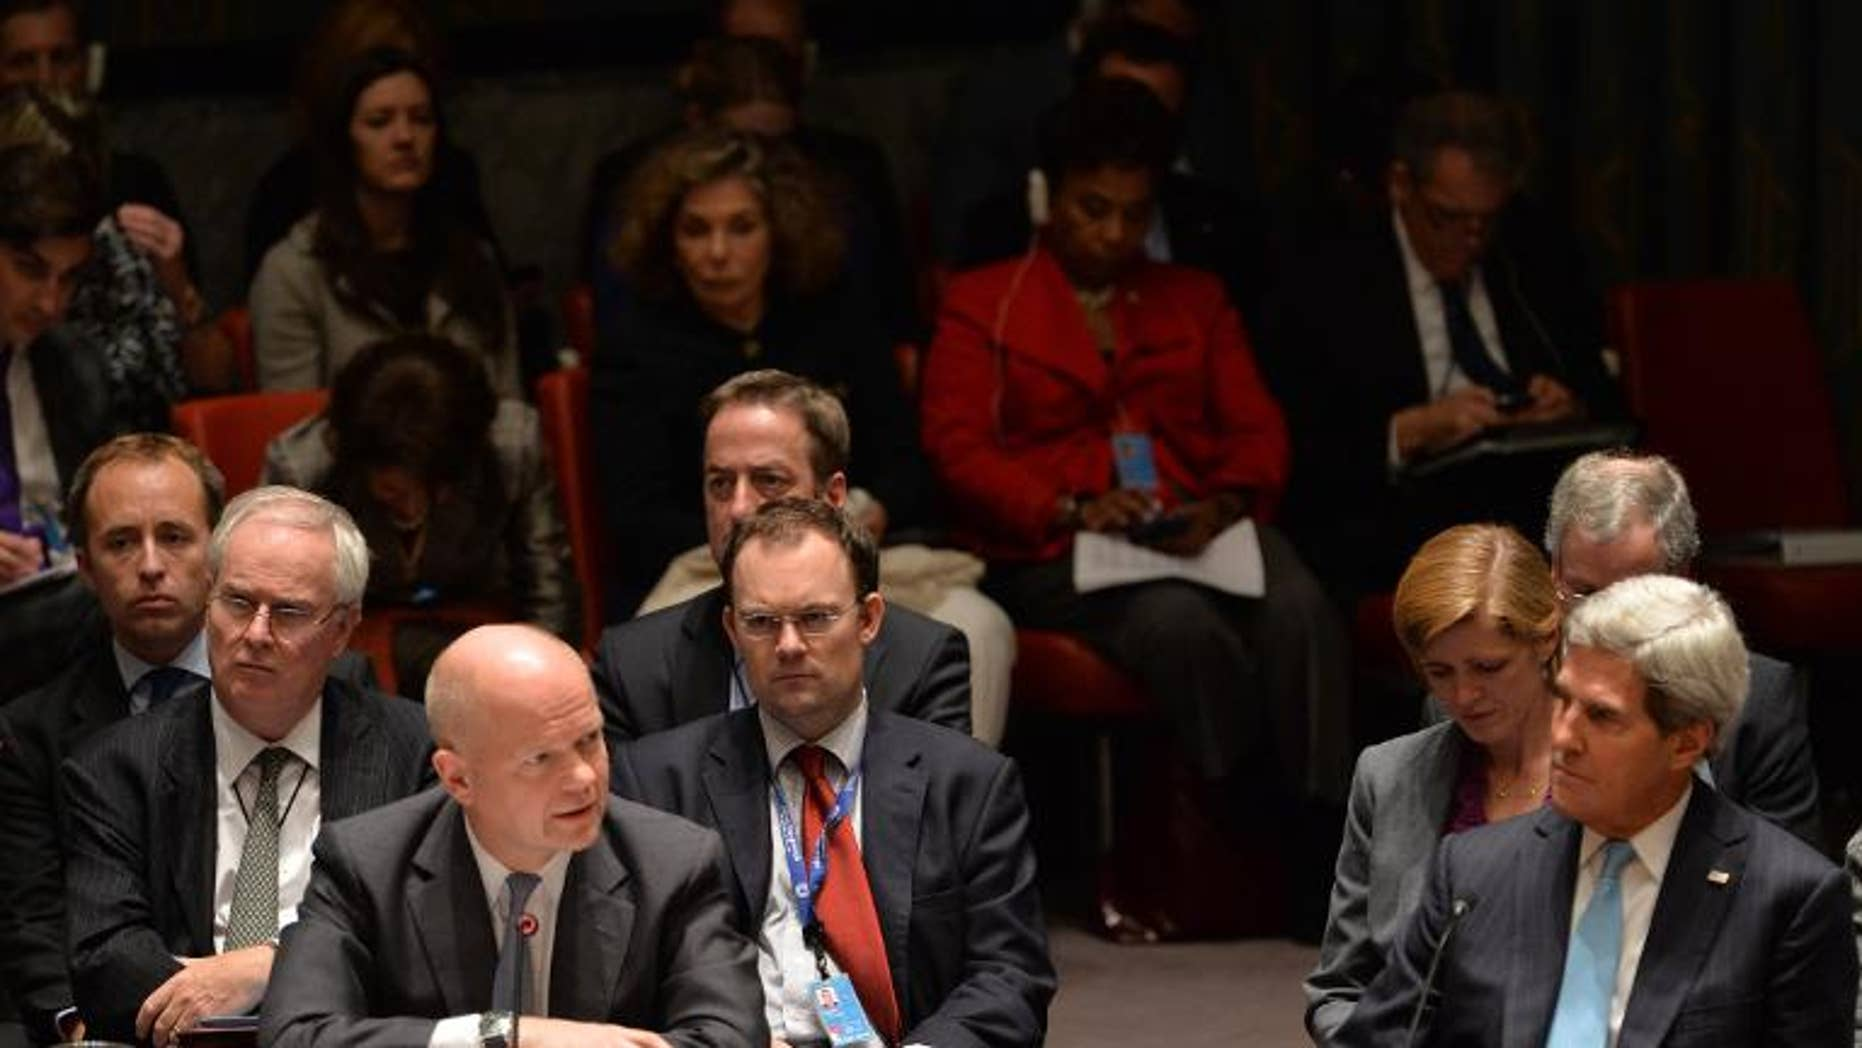 British Foreign Minister William Hague (L) speaks in the UN Security Council just after it voted to approve a resolution that will require Syria to give up its chemical weapons, on September 27, 2013 at the UN headquarters in New York